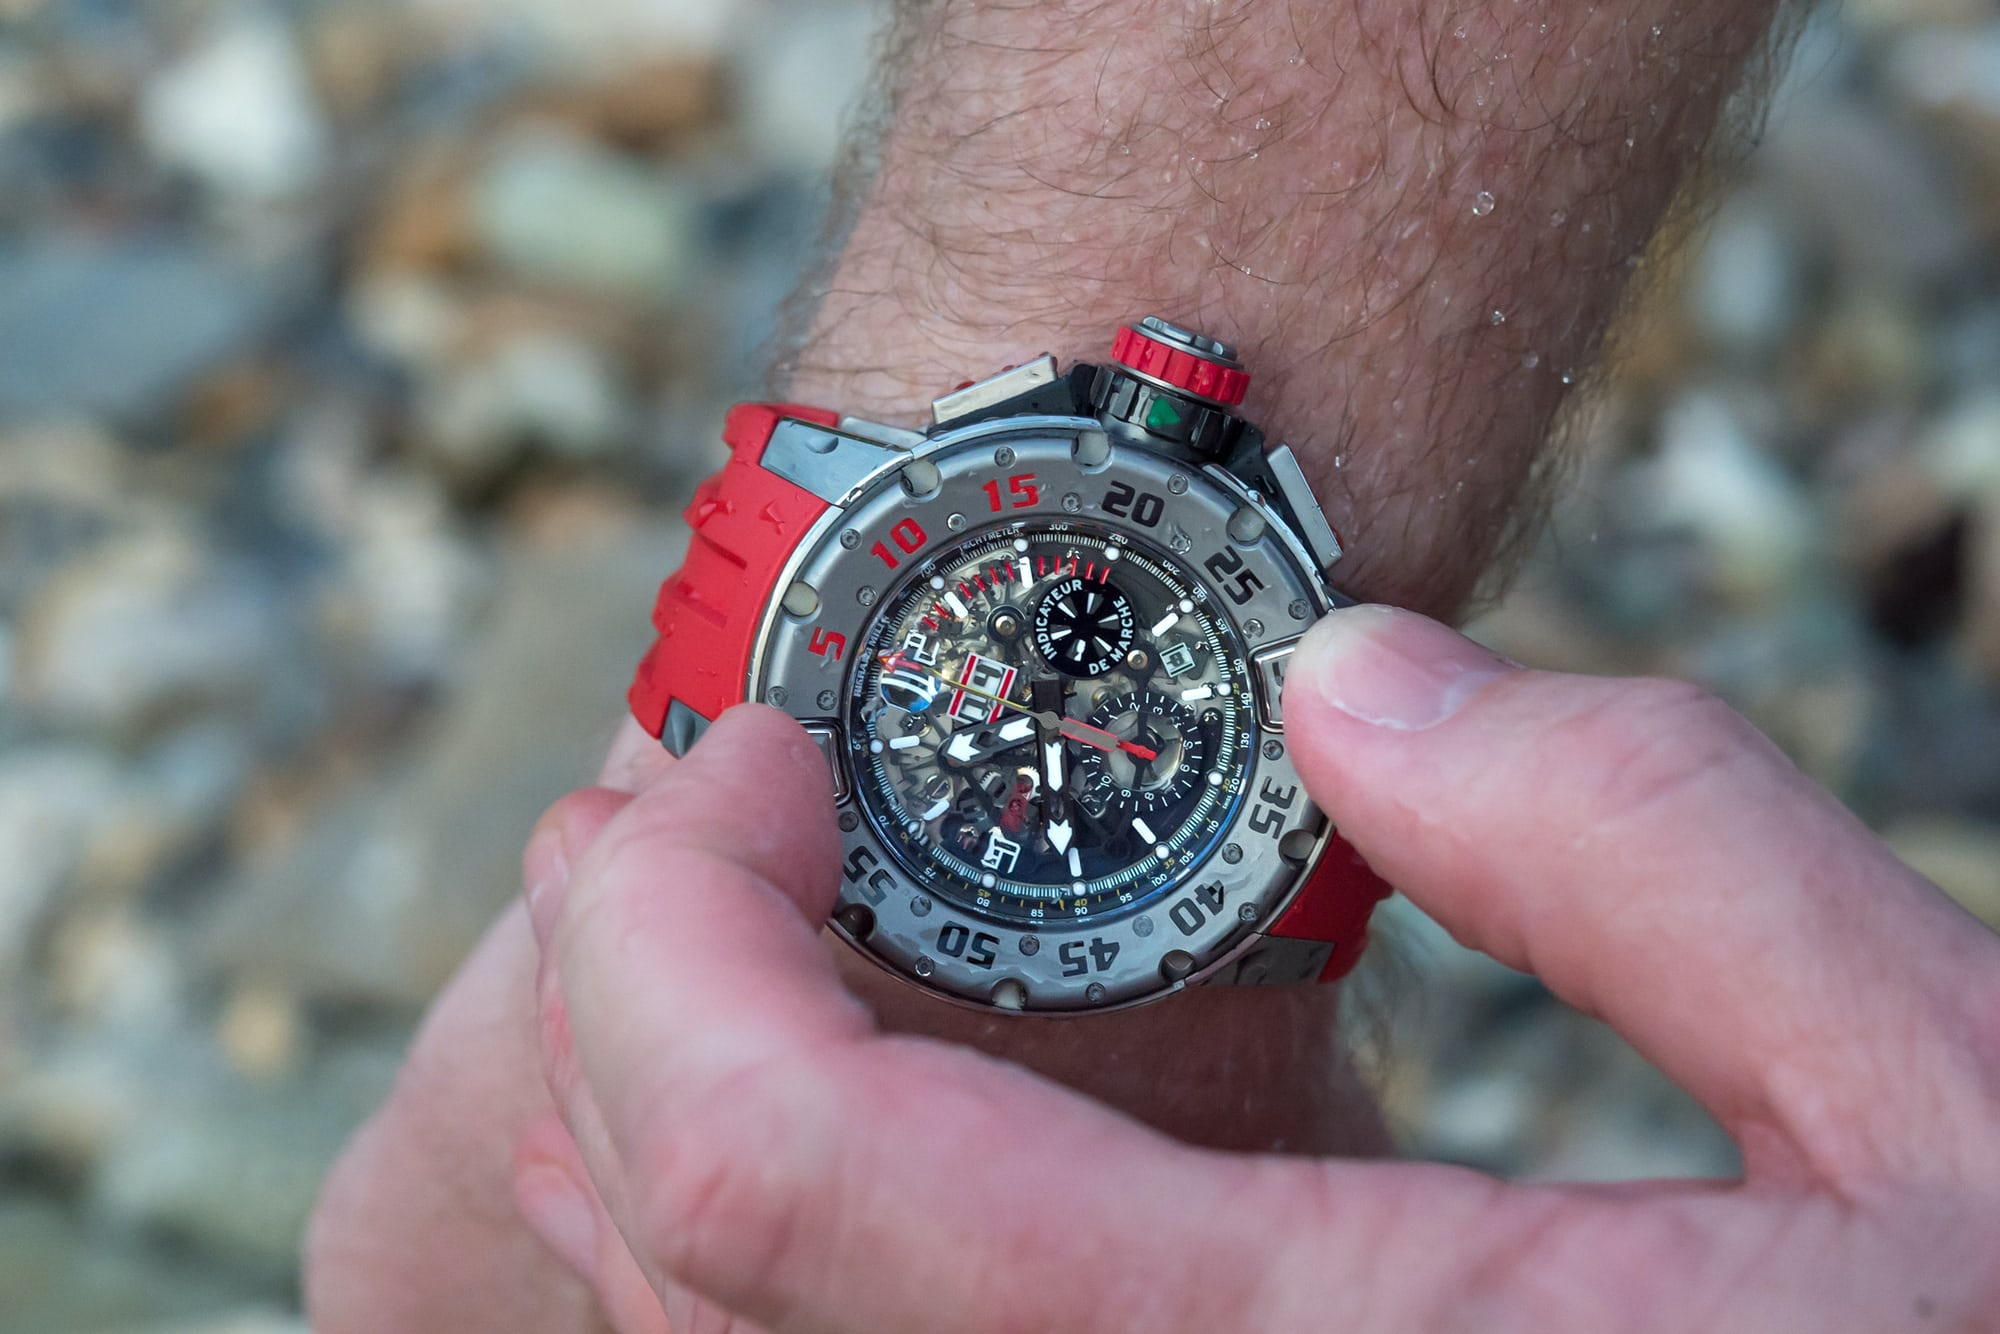 richard mille RM 032 surface dive bezel Hands-On: The Richard Mille RM 032 Diver Flyback Chronograph Hands-On: The Richard Mille RM 032 Diver Flyback Chronograph RM032 7